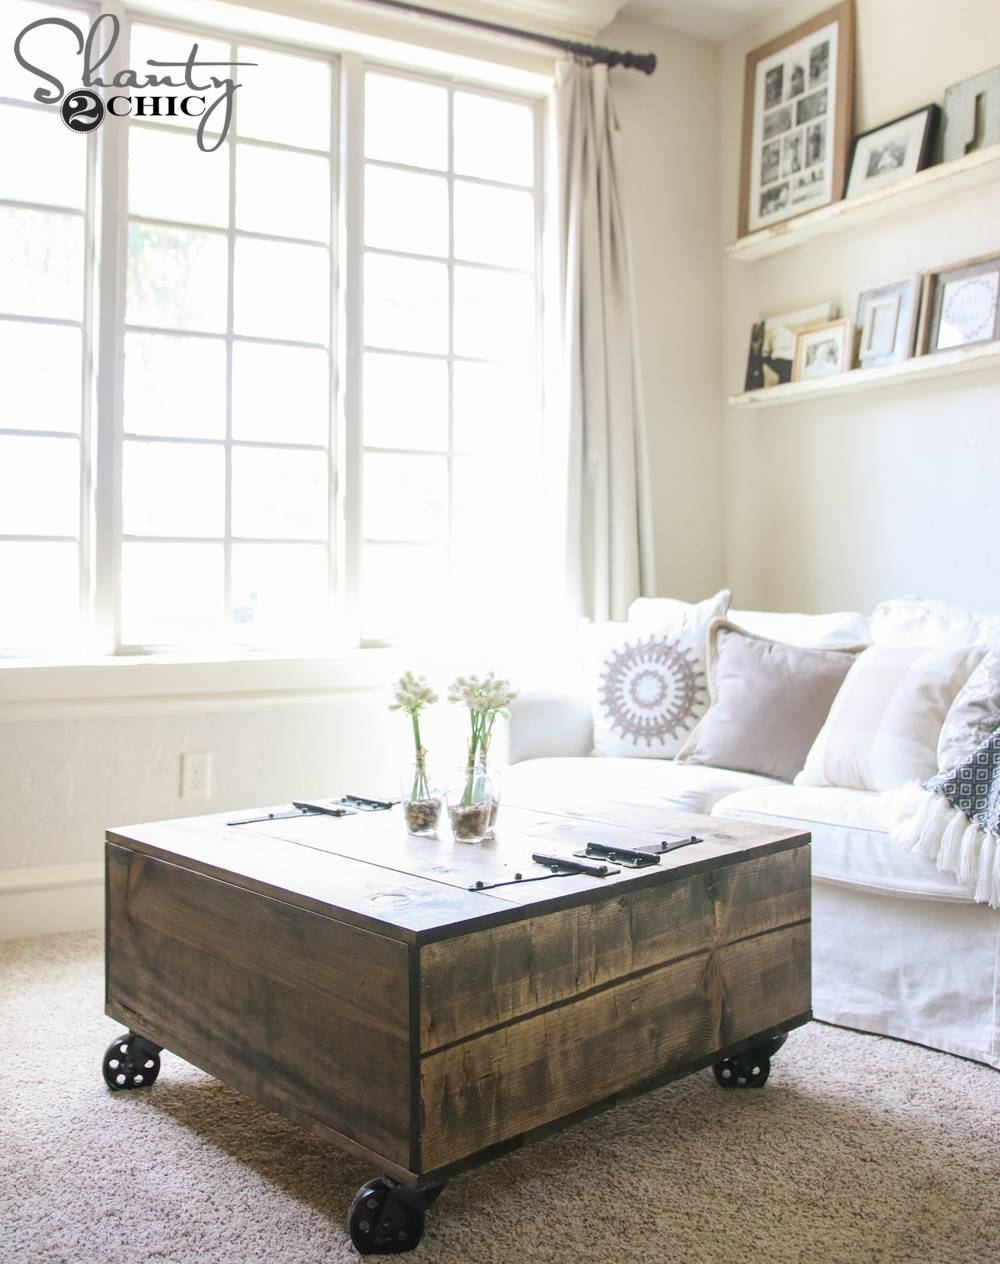 Diy Storage Coffee Table & Youtube Video Tutorial! – Shanty 2 Chic Intended For Storage Coffee Tables (View 16 of 30)